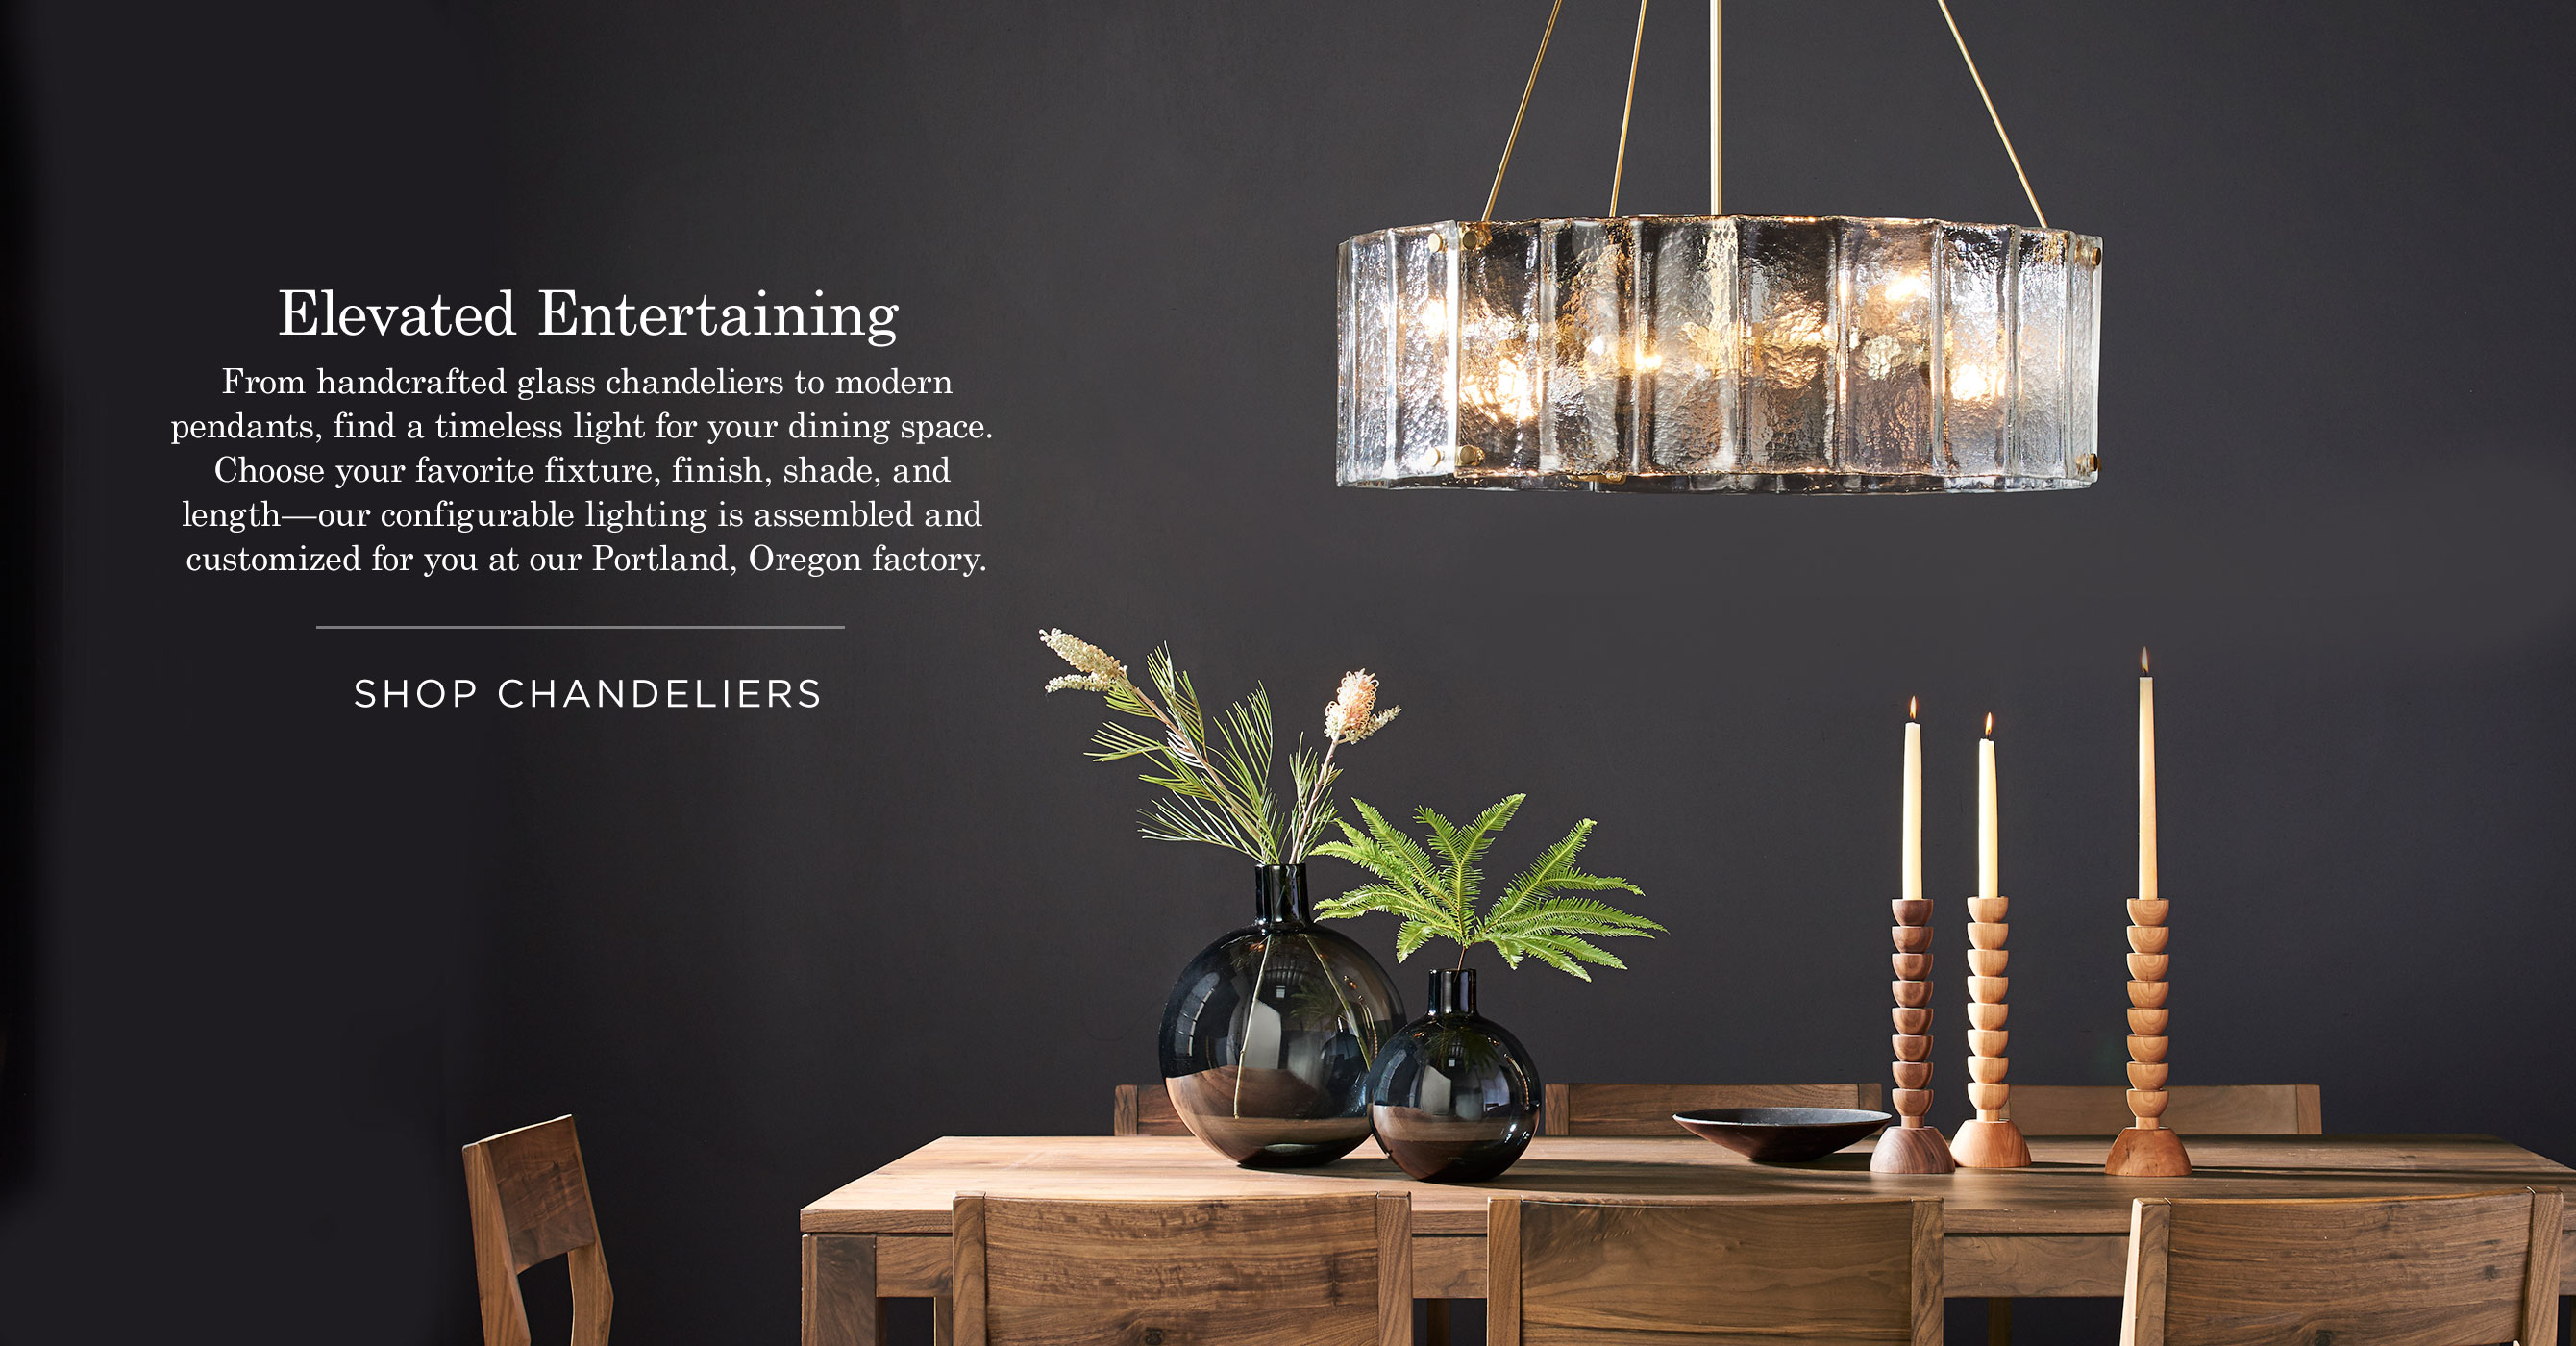 Tips to buy a proper desk lamps lighting and chandeliers - Portland Made Lighting Holiday Gift Guide Willamette Chandelier